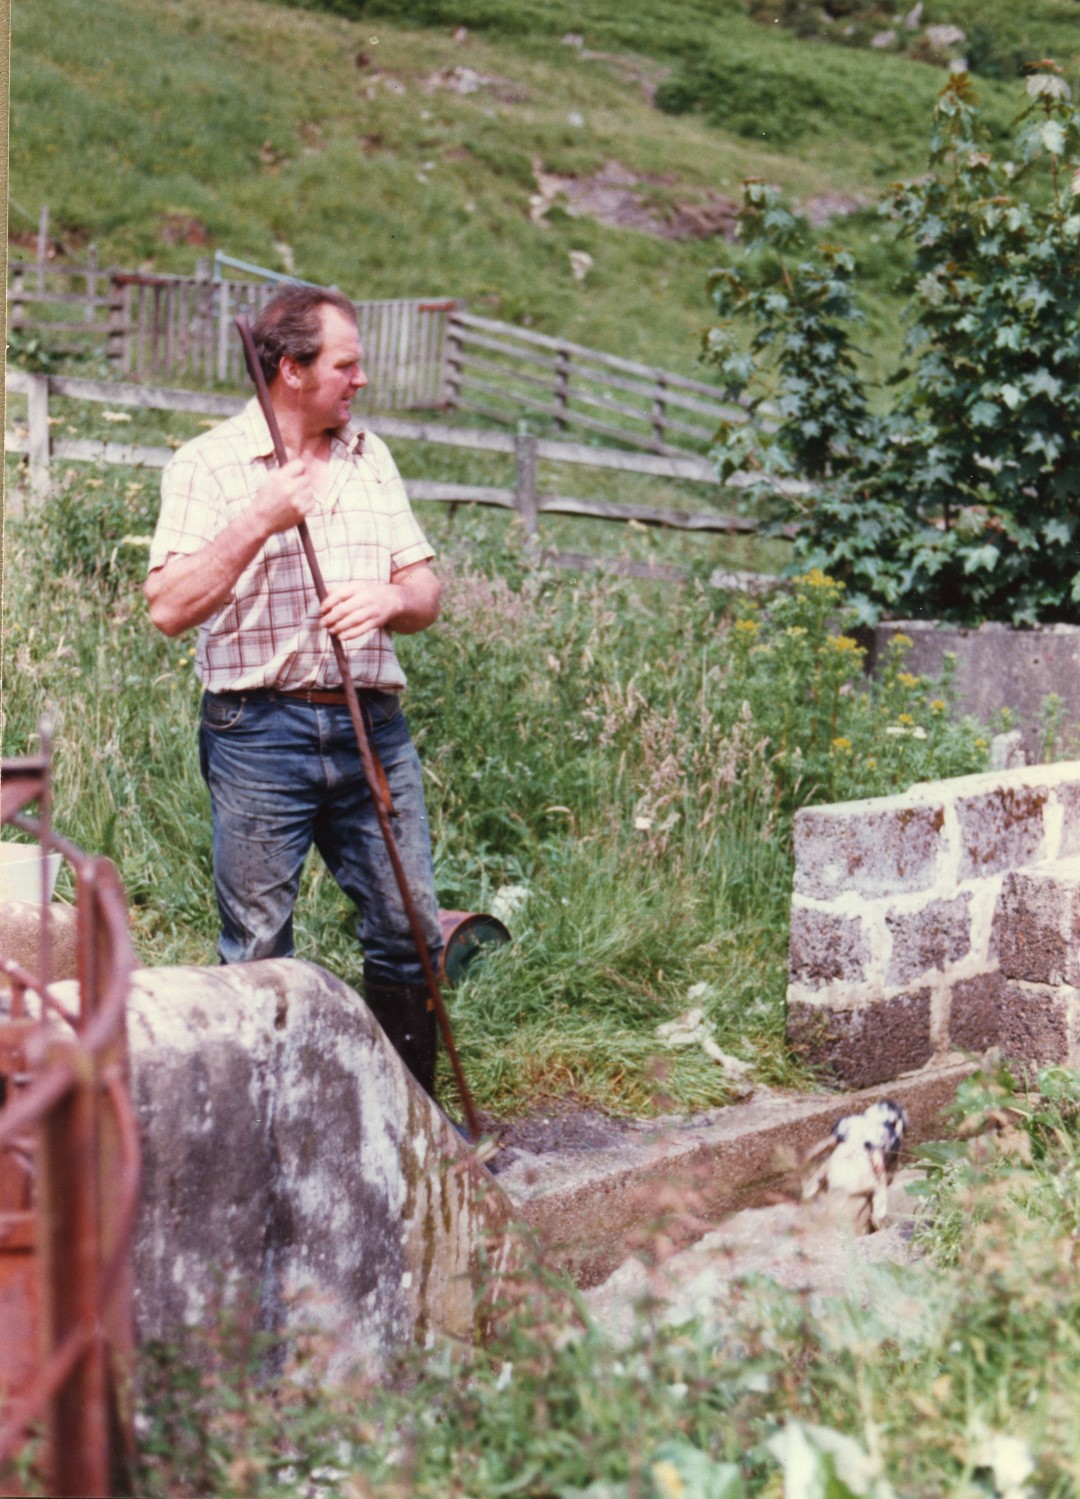 man in jeans and shirt sleeves holding a shepherds crook and looking off to the side